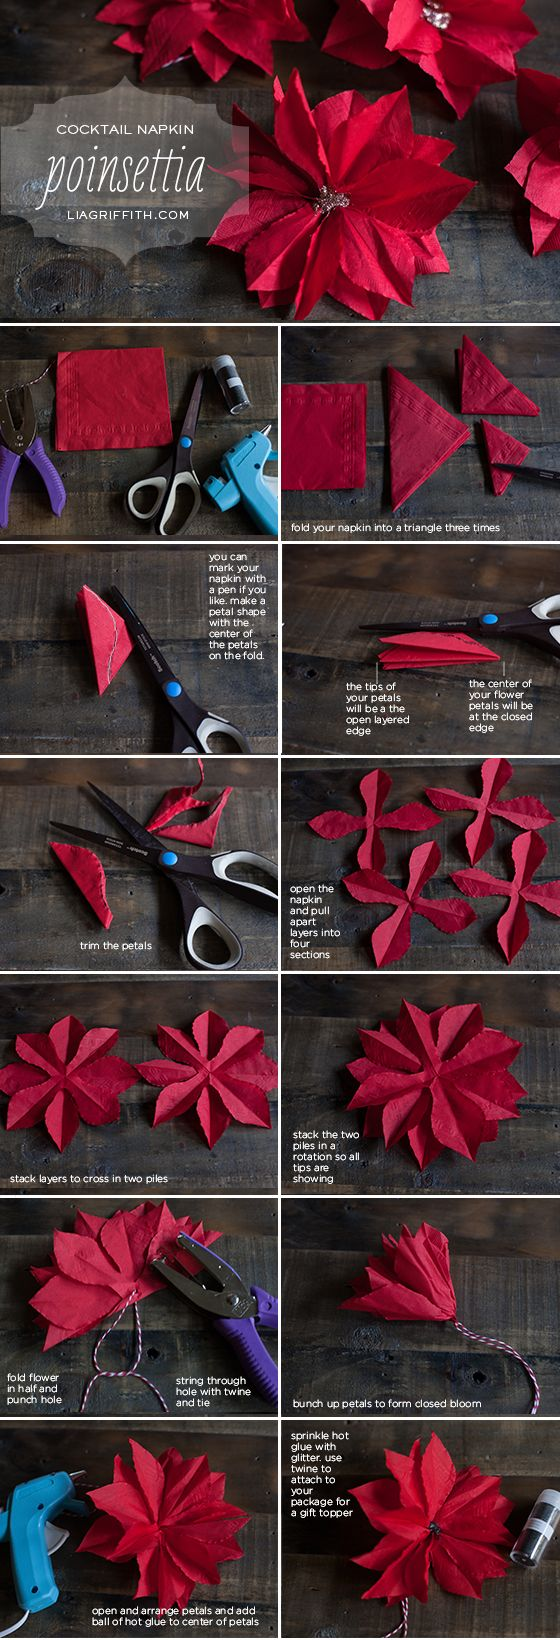 Paper Poinsettia Tutorial - by Lia Griffith -- http://liagriffith.com/make-a-paper-poinsettia-from-a-cocktail-napkin/: